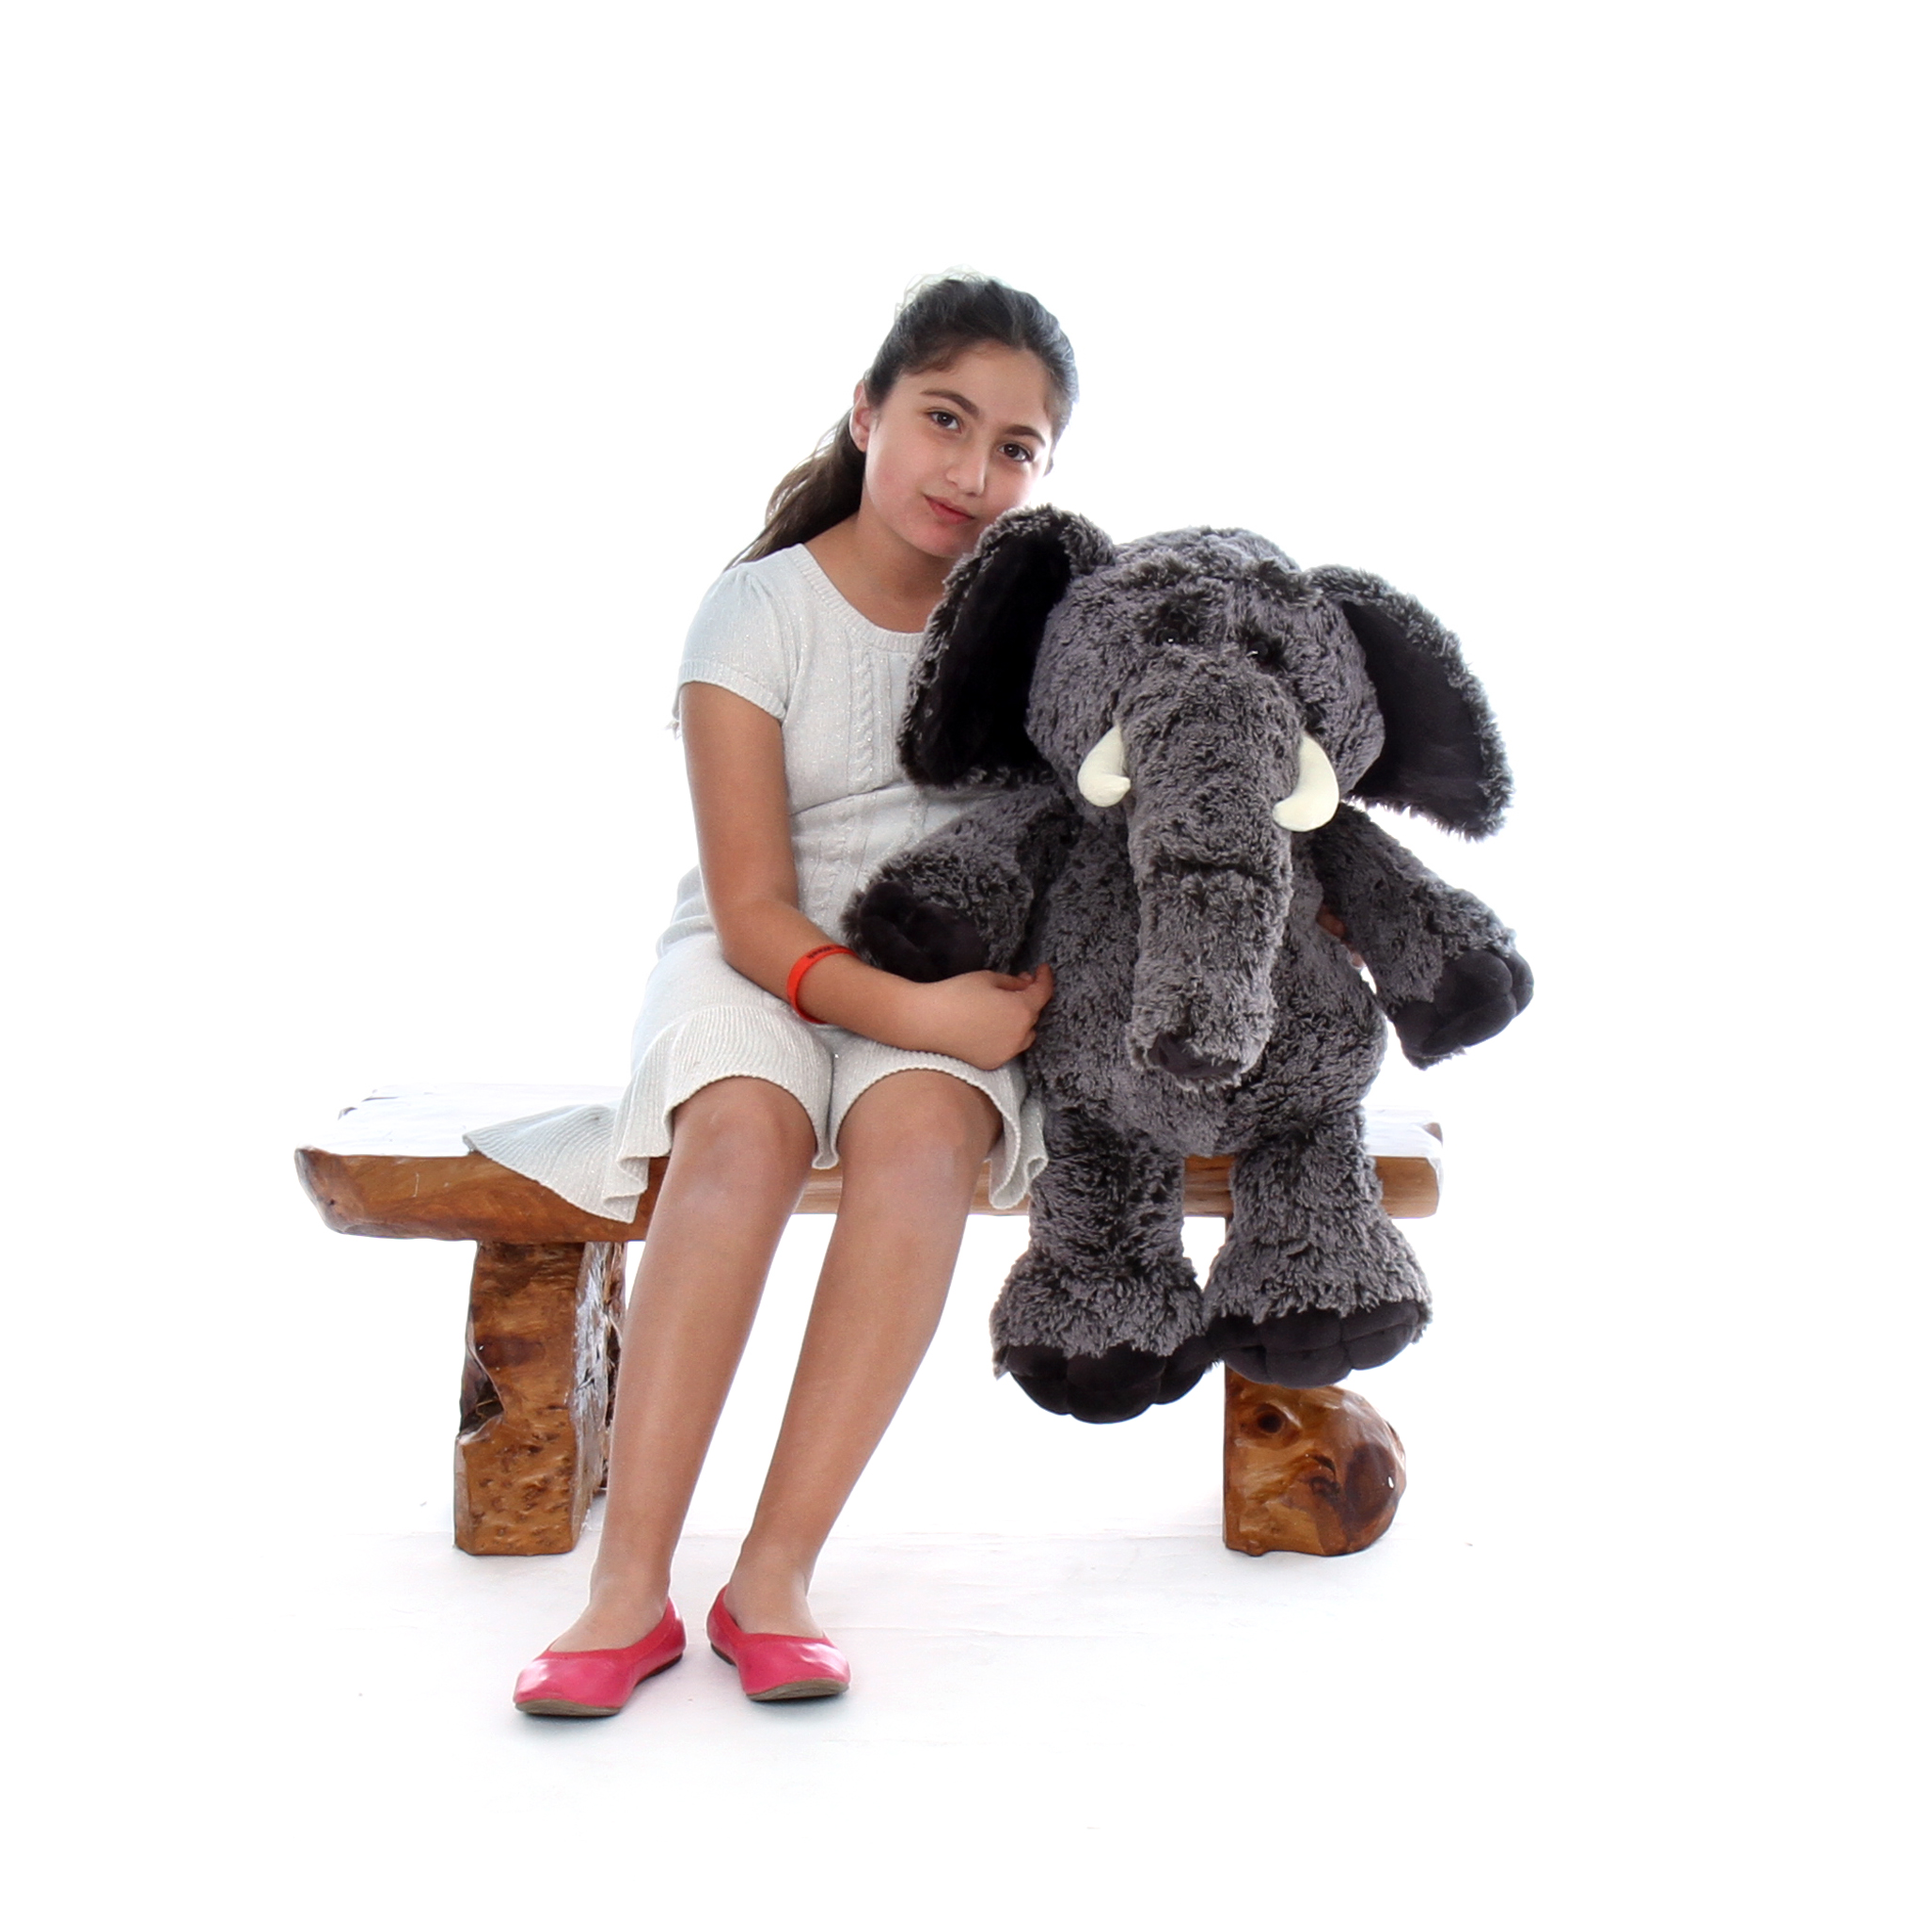 30in-gray-stuffed-animal-elephant-great-gift-for-all-occasions-.jpg